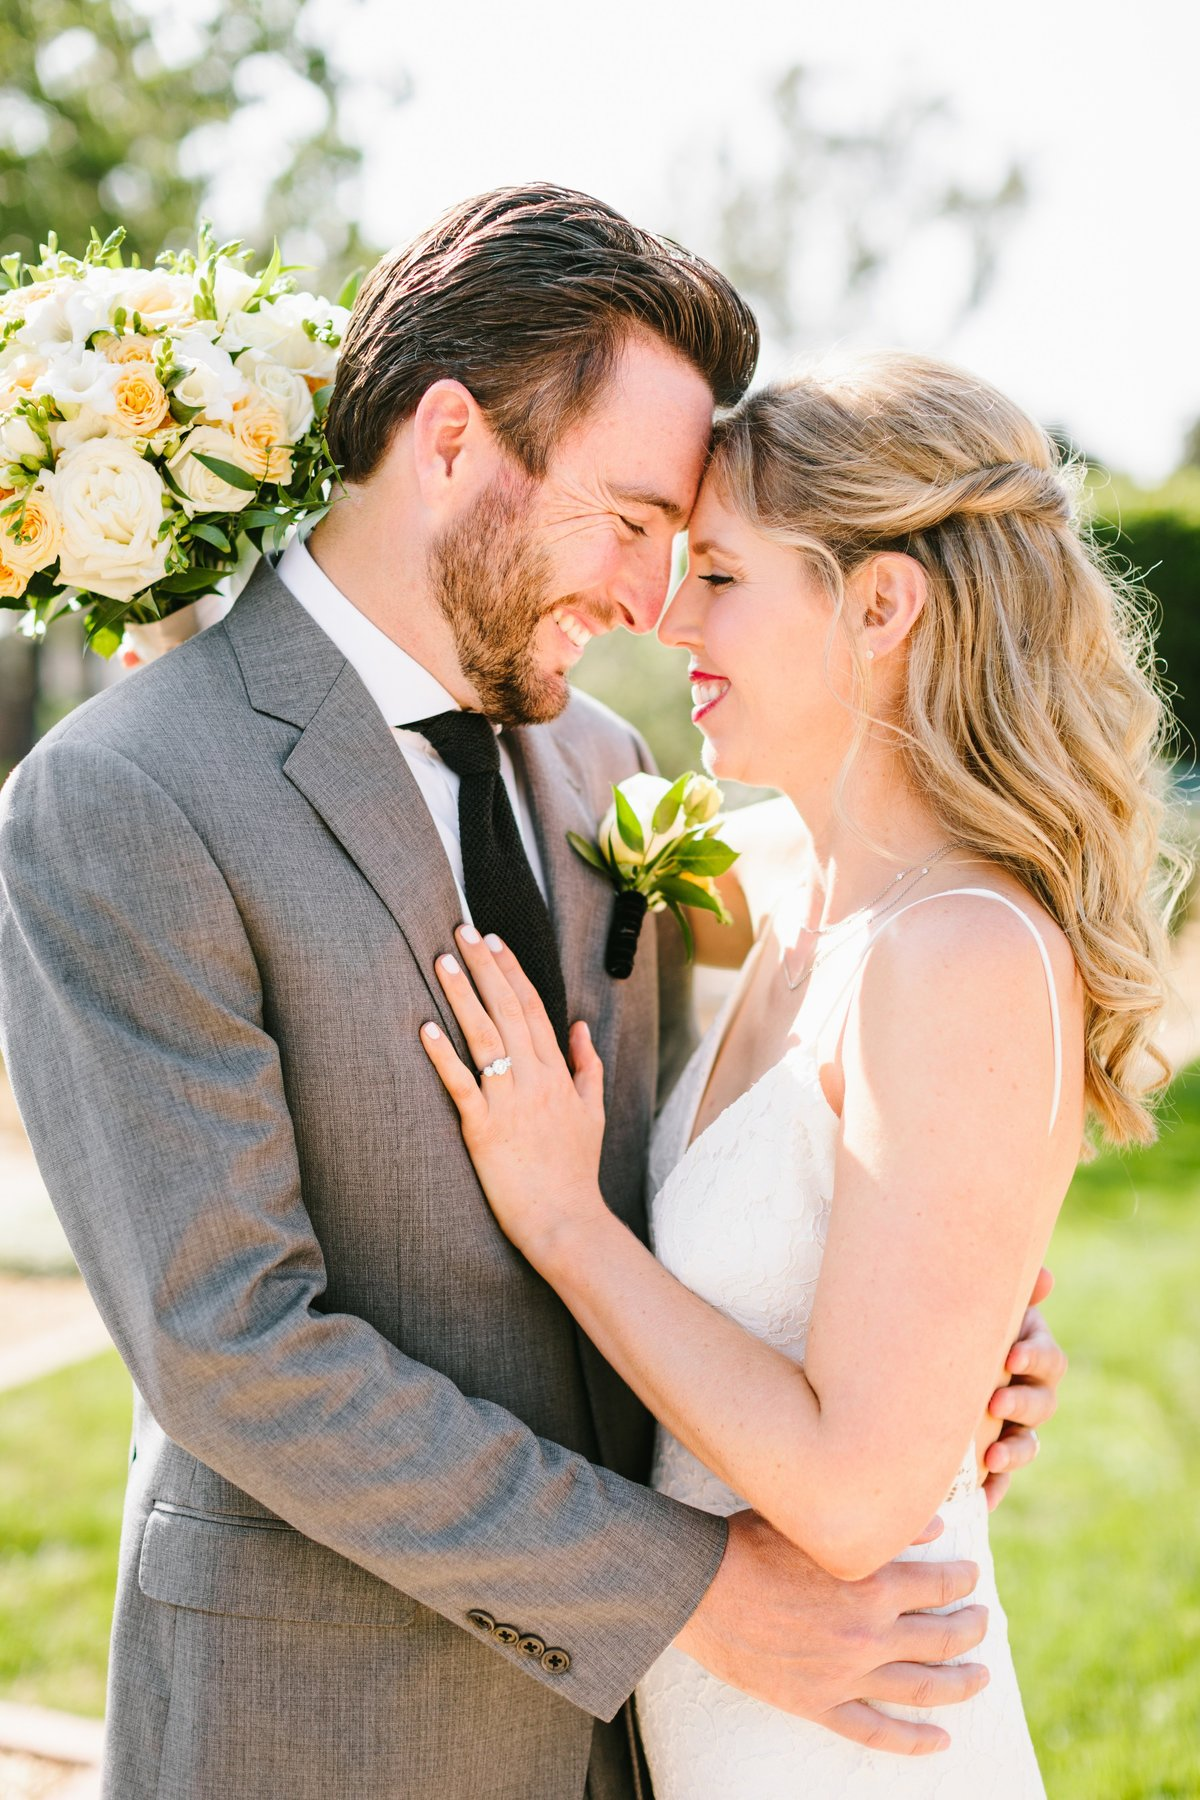 Best California Wedding Photographer-Jodee Debes Photography-169